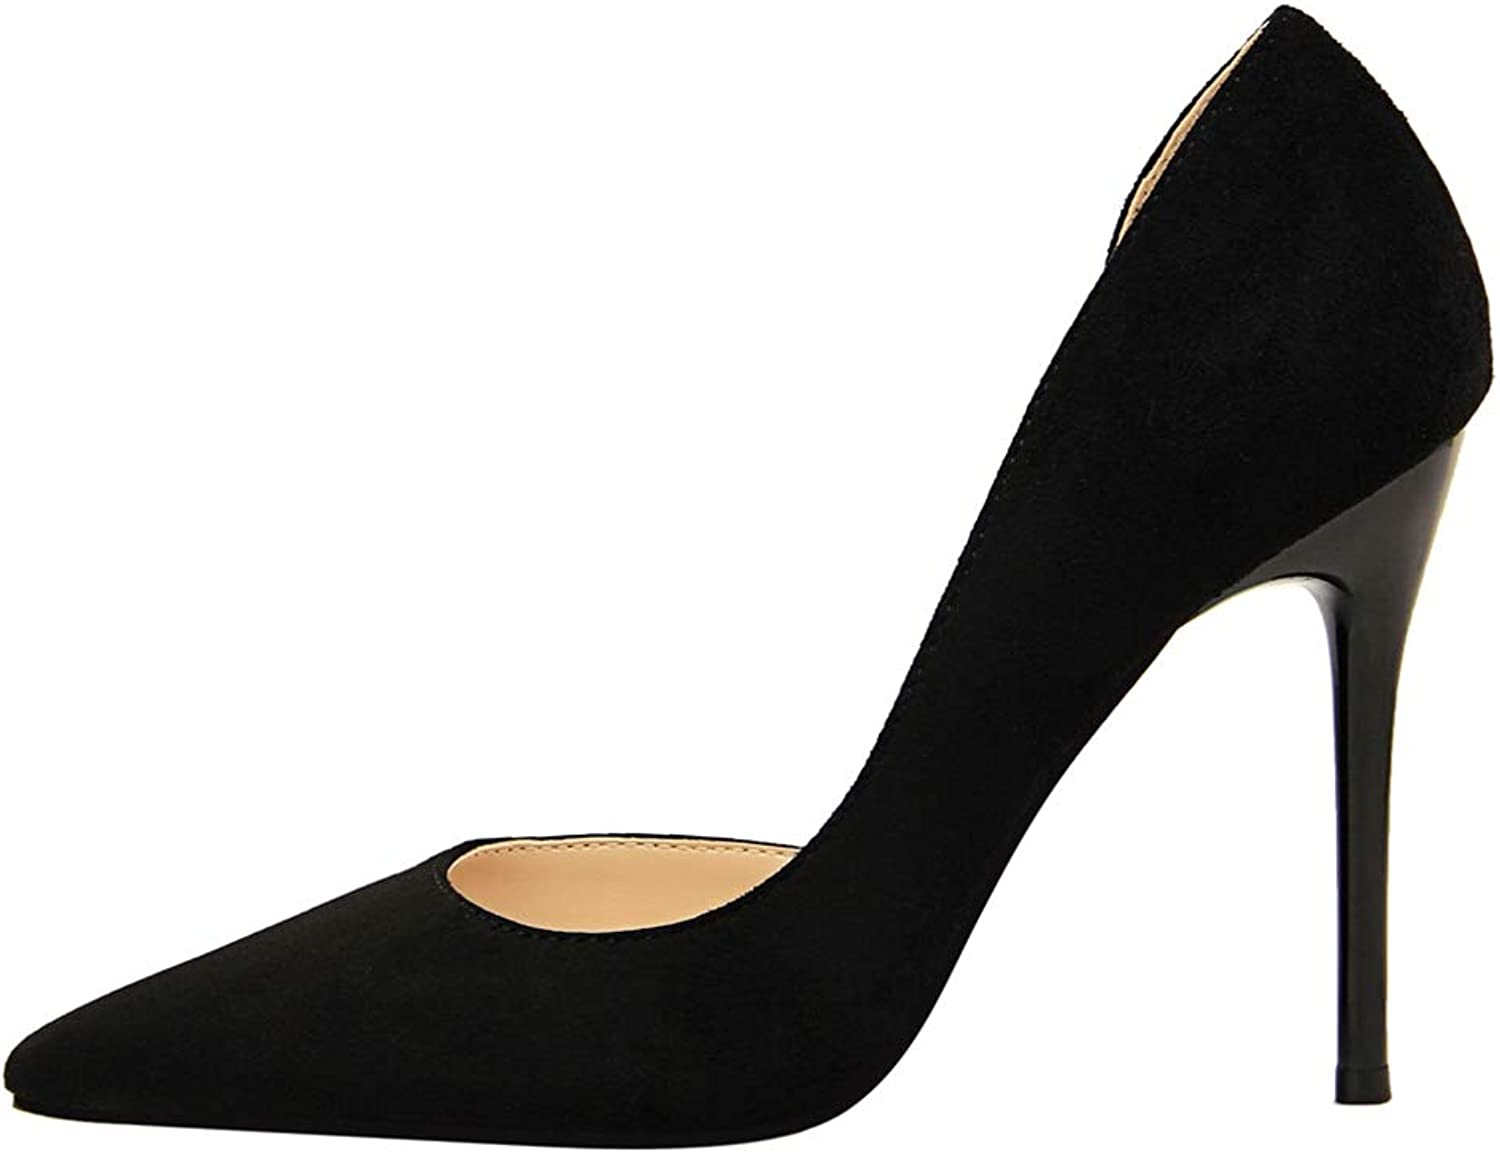 Sam Carle Women Pumps, Suede Side Hollow High Thin Heel Pointed Toe Dating Party shoes